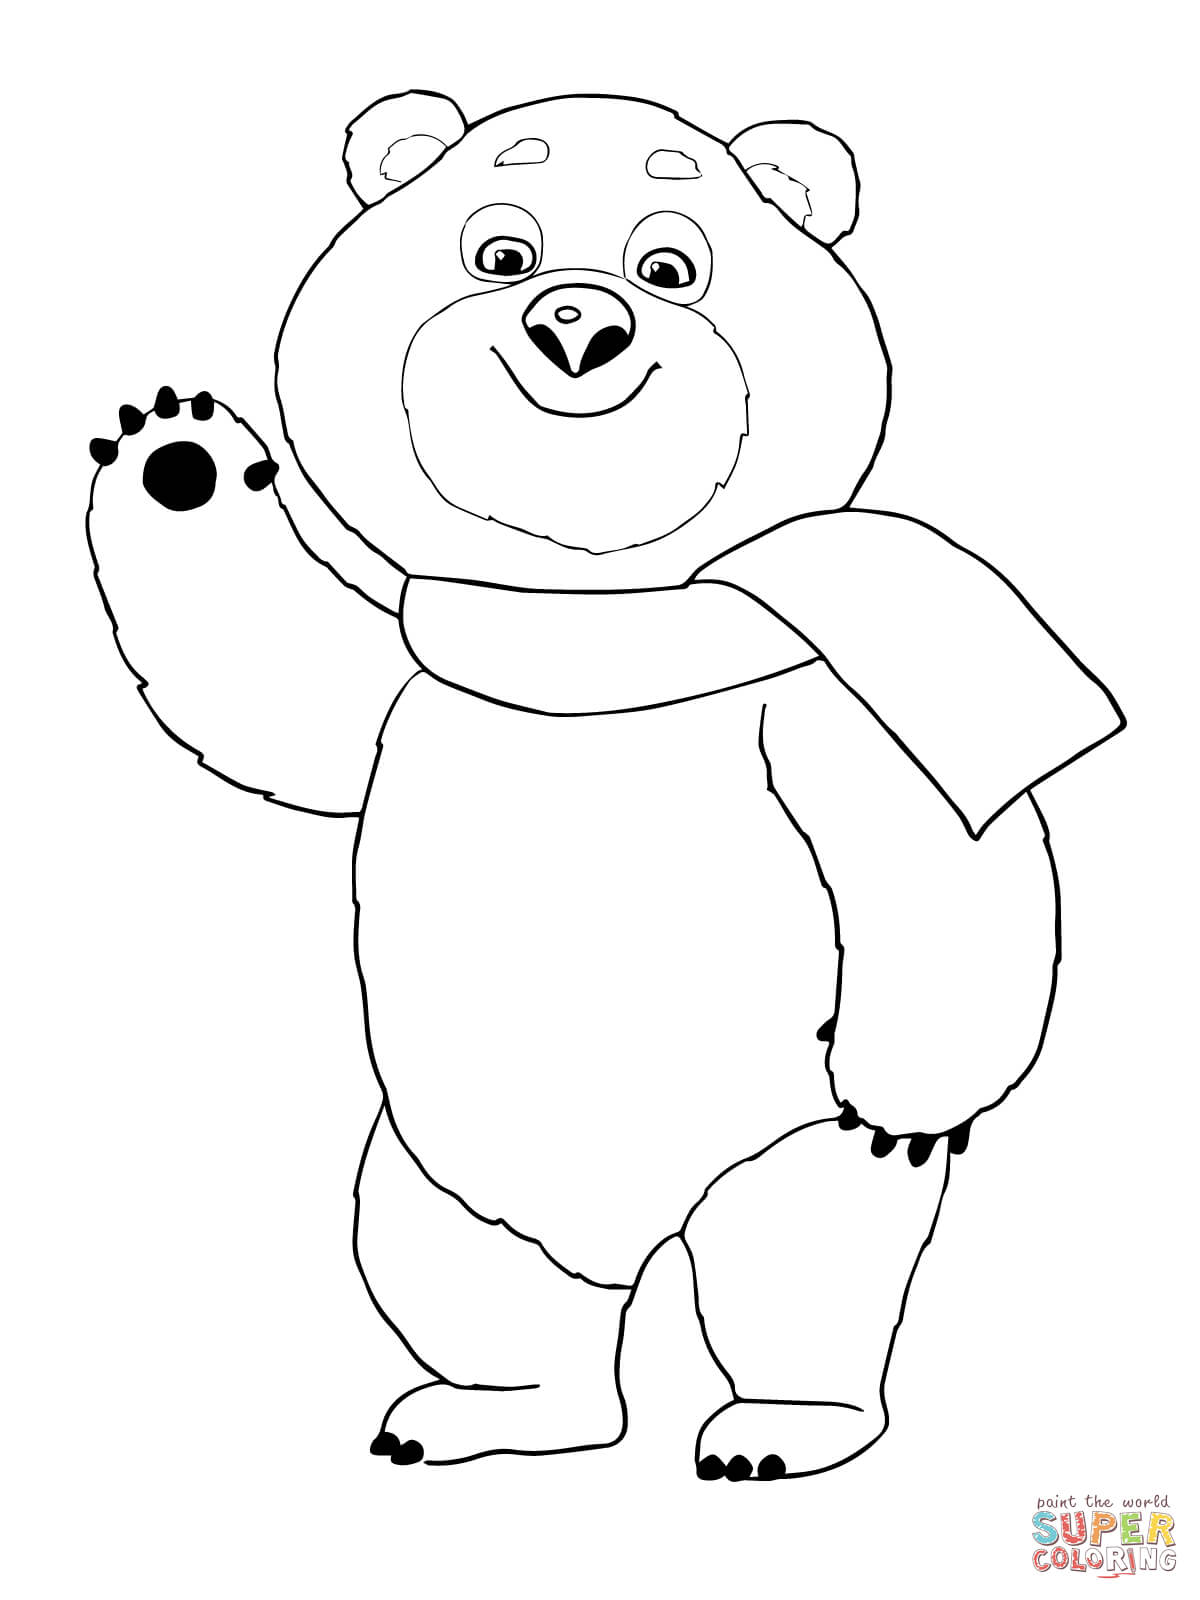 The Polar Bear Winter Olympic Mascot Coloring Page